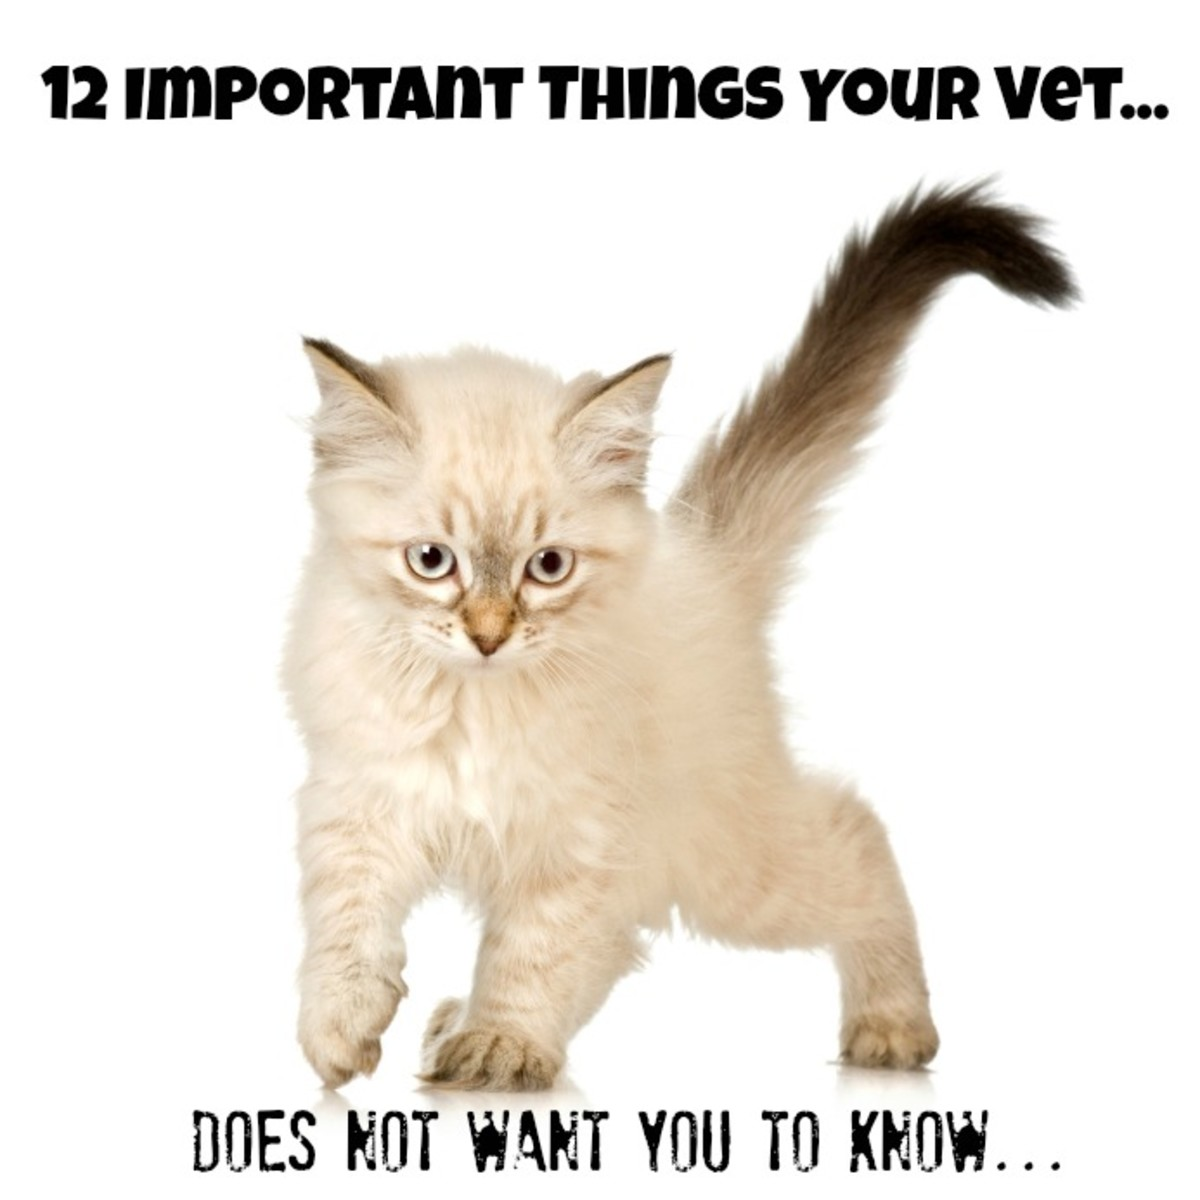 12 Things Your Vet Does Not Want You To Know!